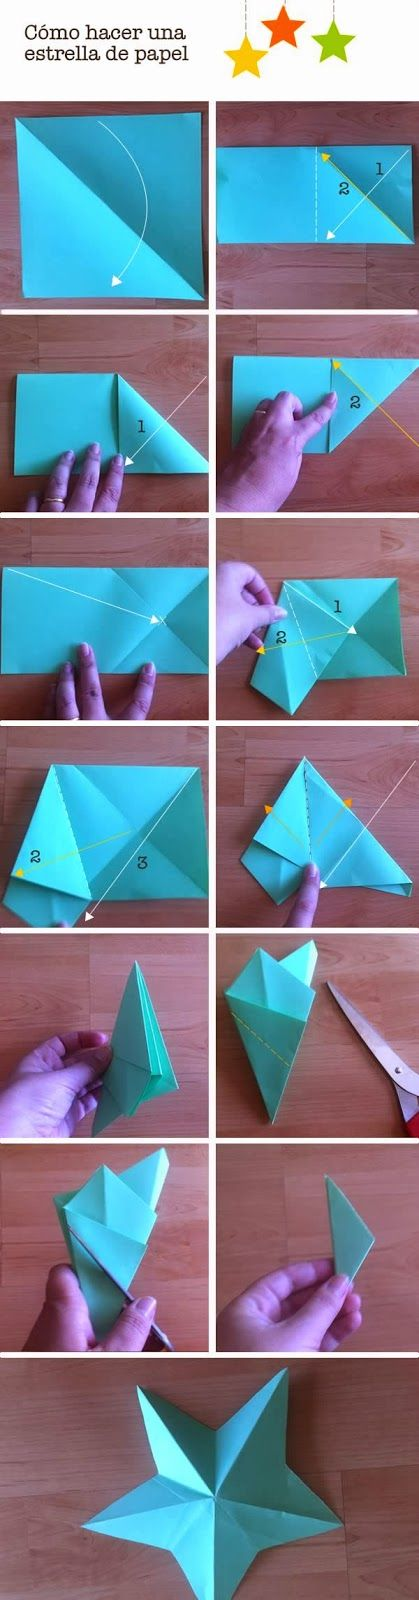 Pin by carmen servan on pa clase pinterest - Manualidades de estrellas de papel ...